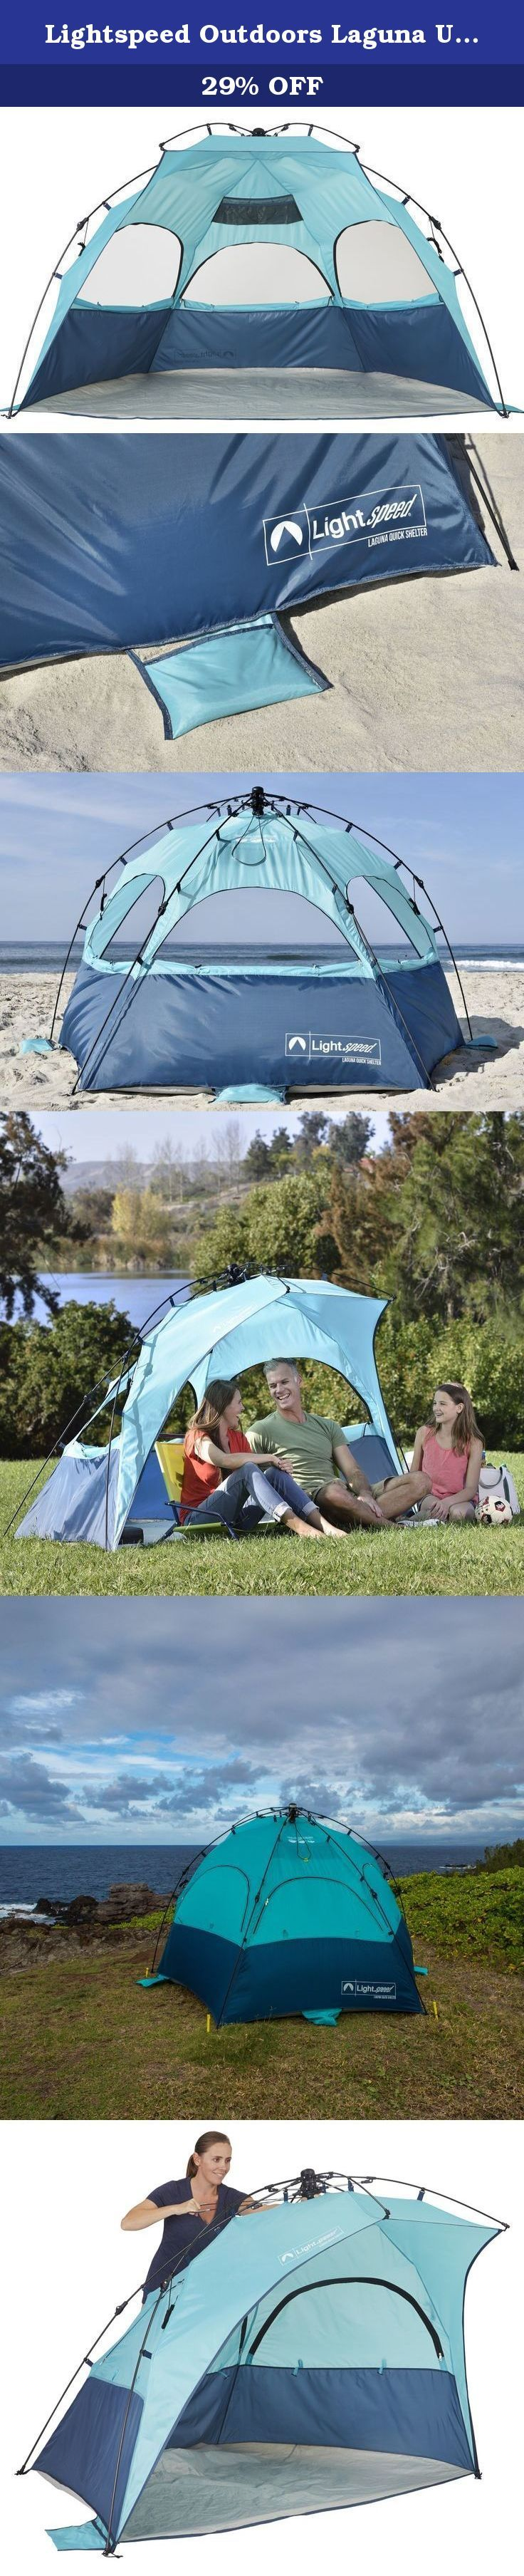 Lightspeed Outdoors Laguna UPF 50+ Easy Up Beach Canopy Sun Shelter. For a relaxing afternoon outside without feeling the heat of the sun, set up the Lightspeed Outdoors® Laguna Quick Shelter XL. Designed for sun and wind protection, the Laguna Quick Shelter offers sun protection of UPF 50+ and has 3 large zippered for enjoying the ocean breeze. Its hub system makes for easy set up and is well supported but 6 strong fiberglass poles. From the beach to soccer games, store it conveniently…